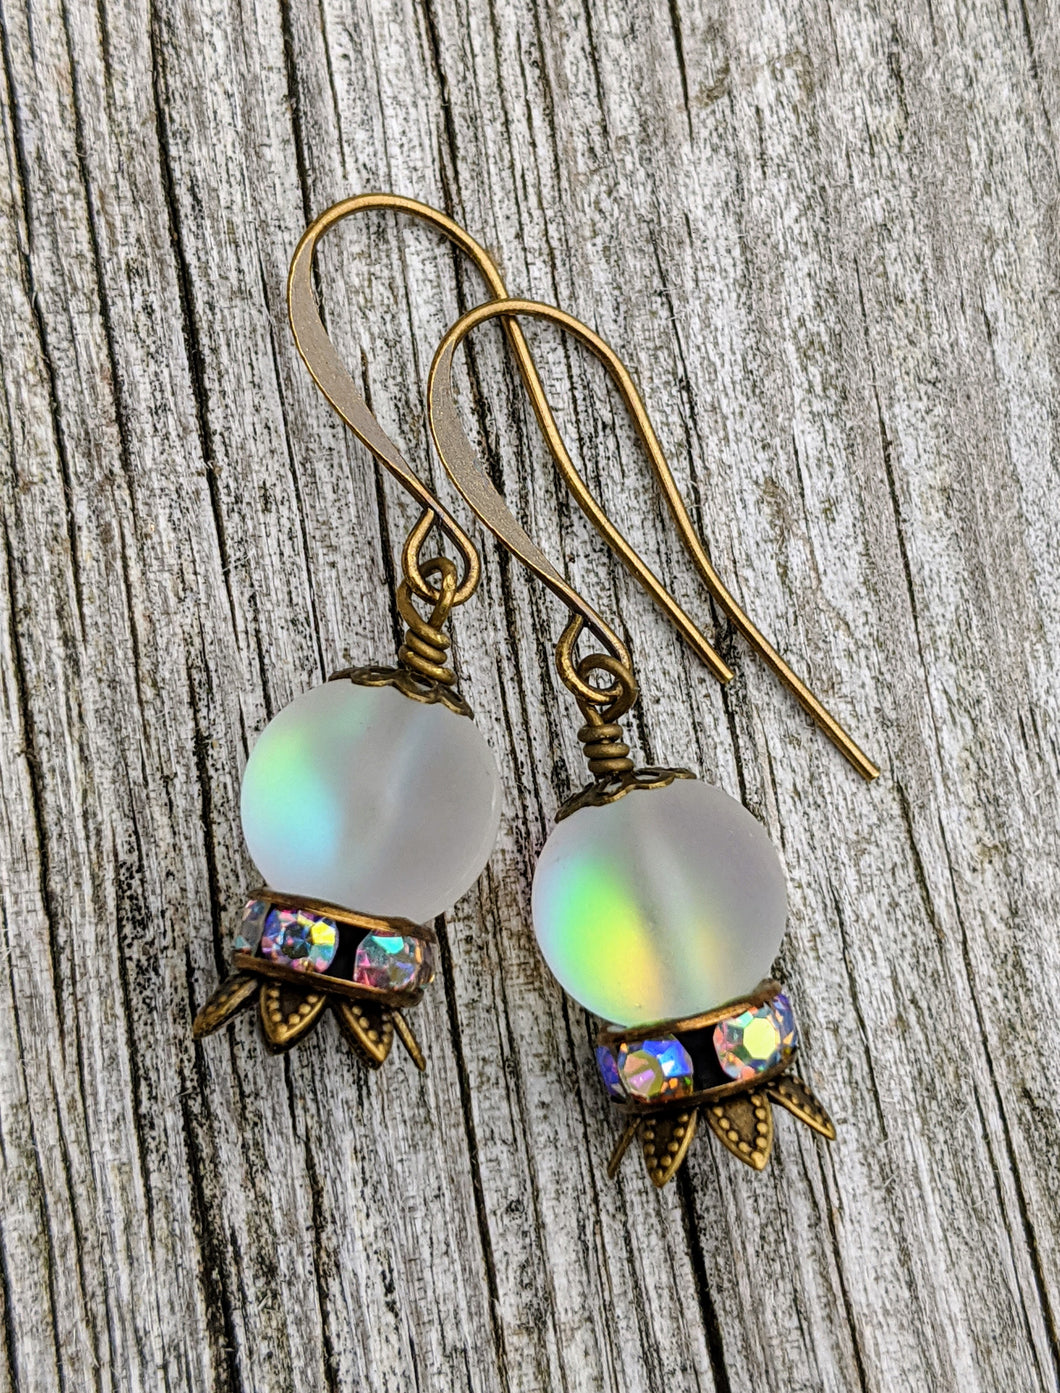 Crystal Ball Earrings - The Future is Murky - Minxes' Trinkets